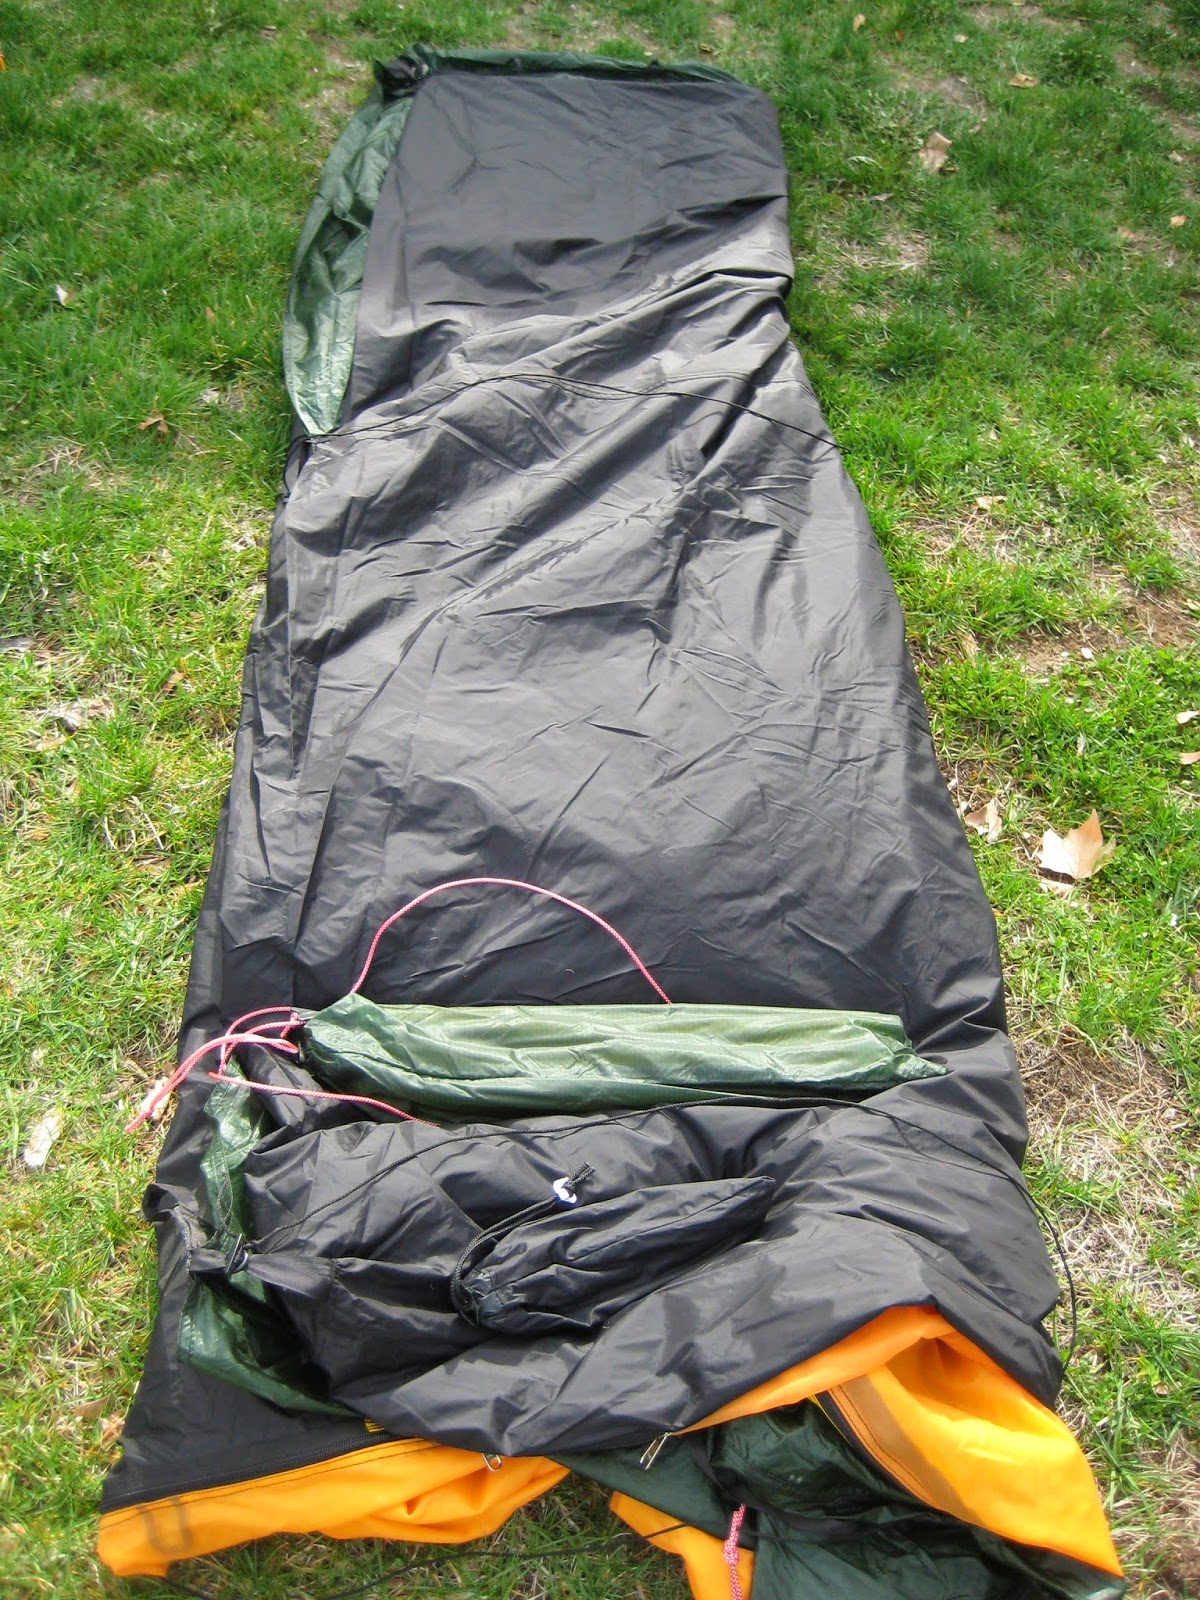 This looks like a great way to start rolling a tent that you care about & How to Fold a Tentu2026 | A2Z with ADHD